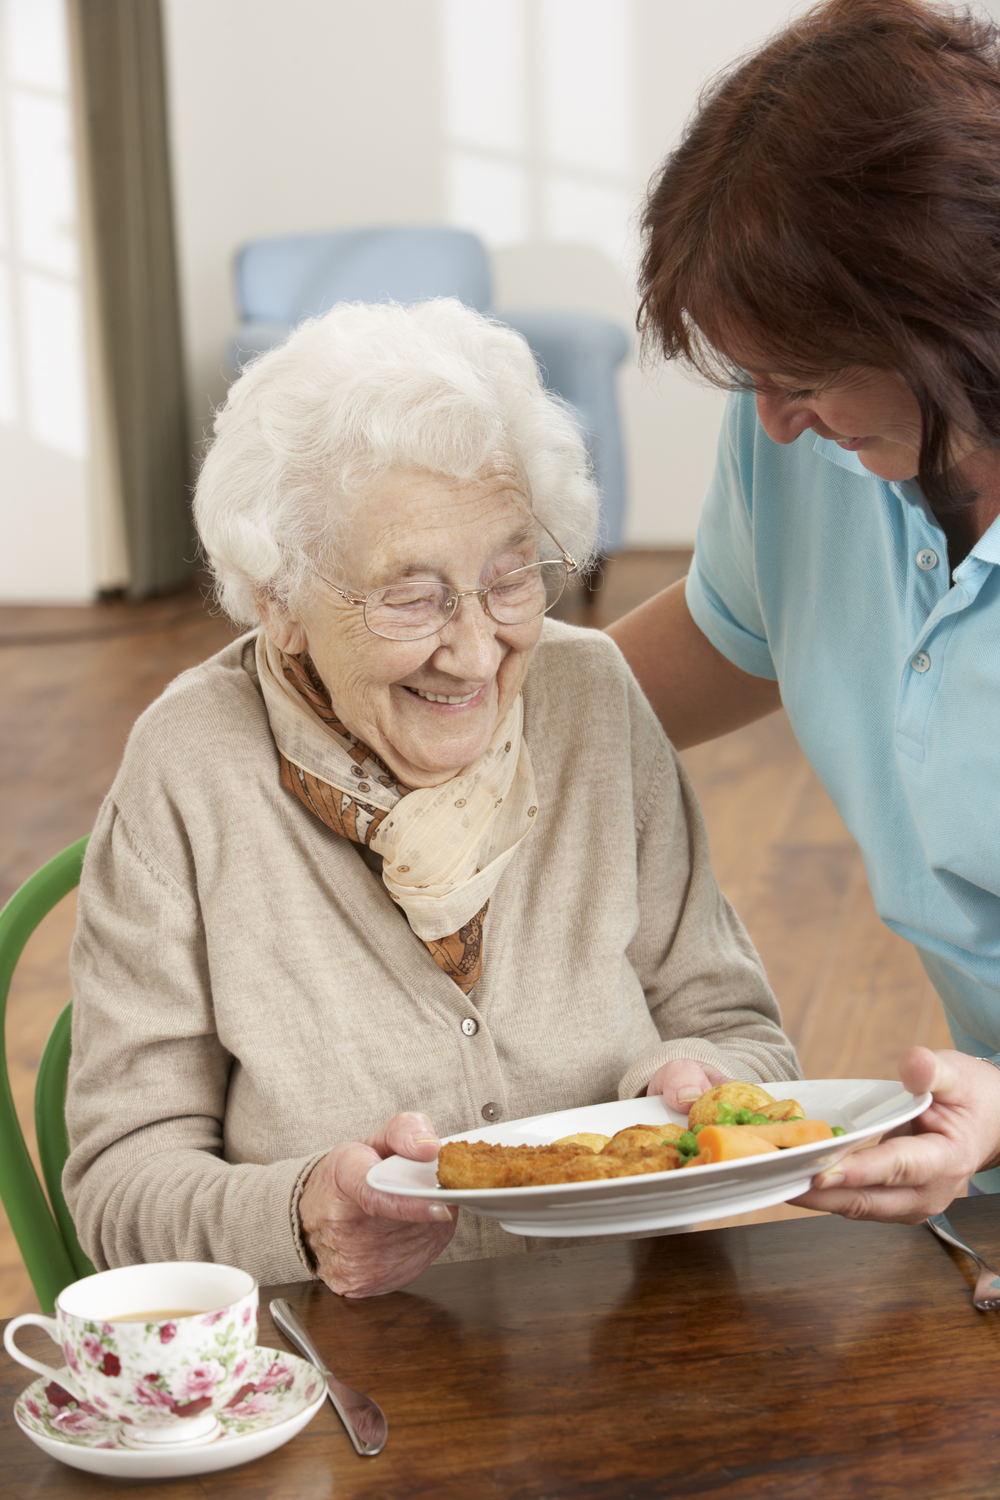 caregiving in an aging population